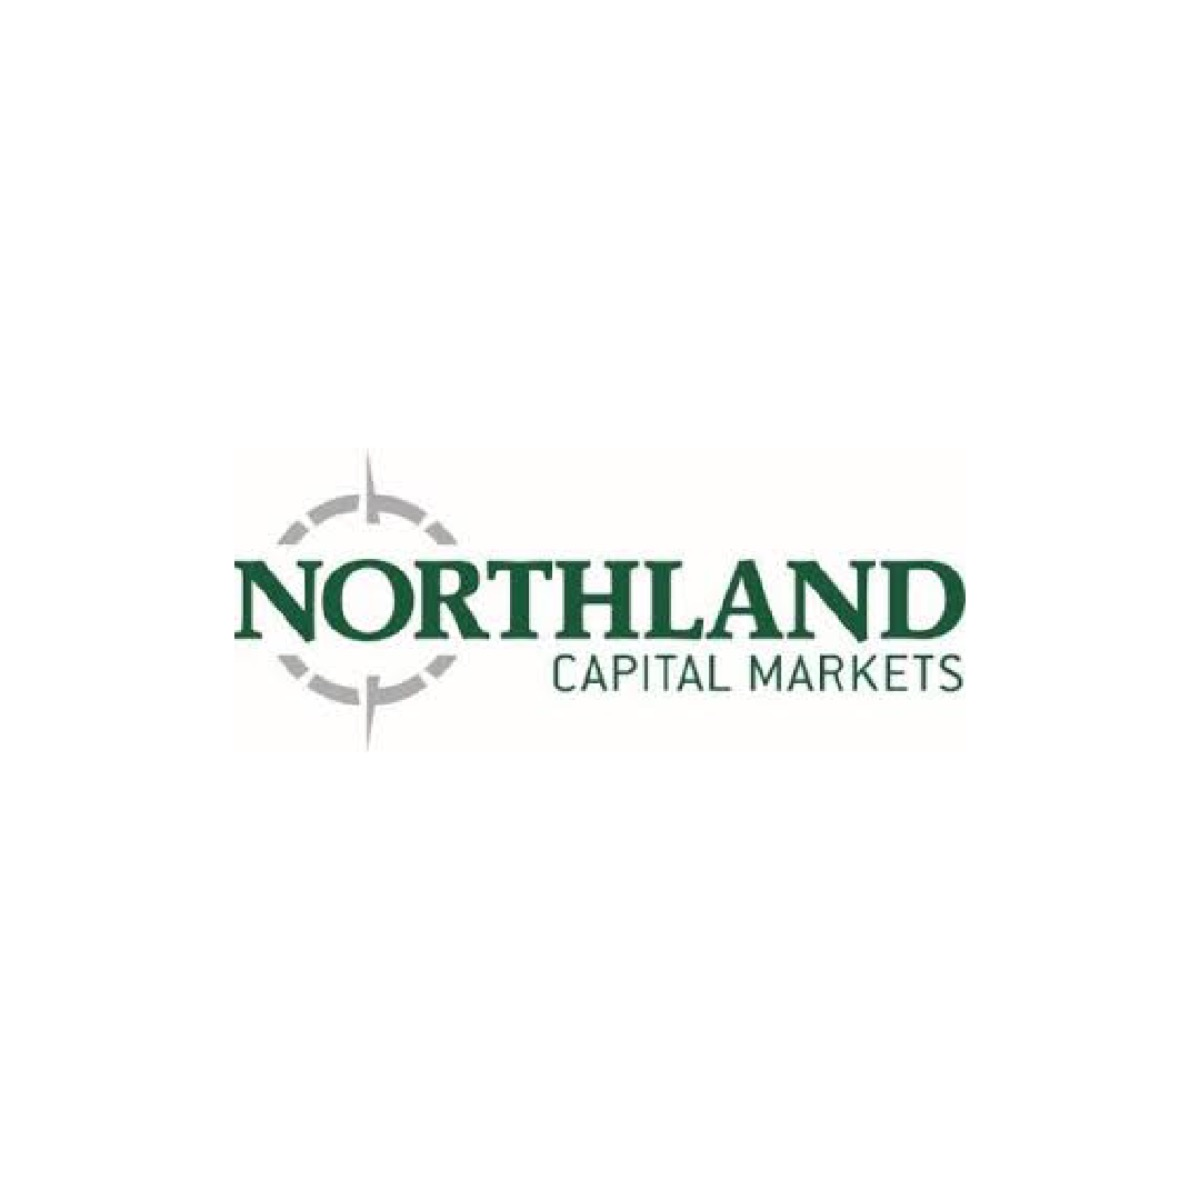 Northland Capital Markets